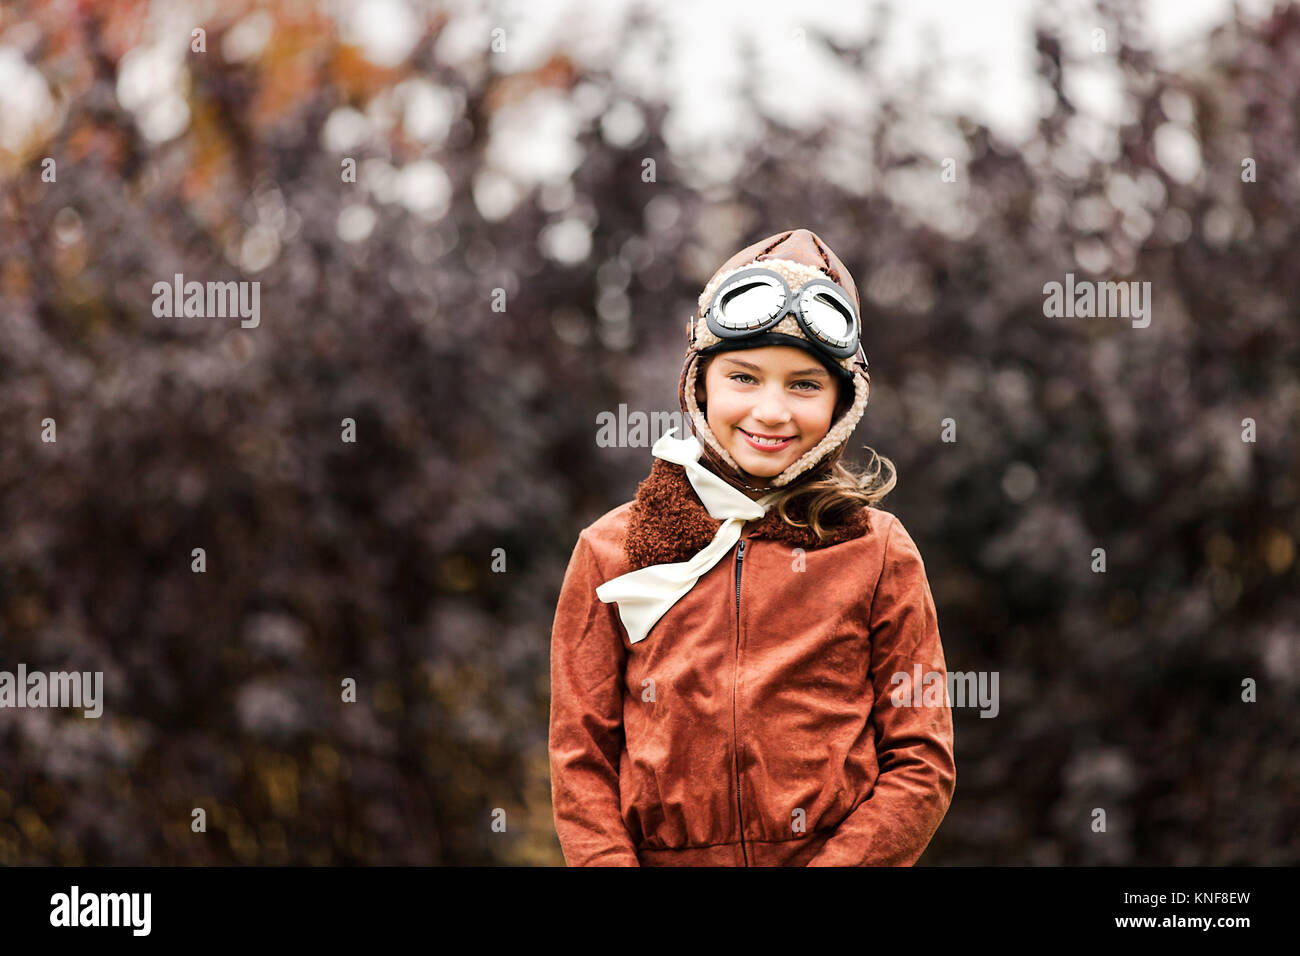 Portrait of girl wearing pilot costume for halloween in park  sc 1 st  Alamy & Portrait of girl wearing pilot costume for halloween in park Stock ...